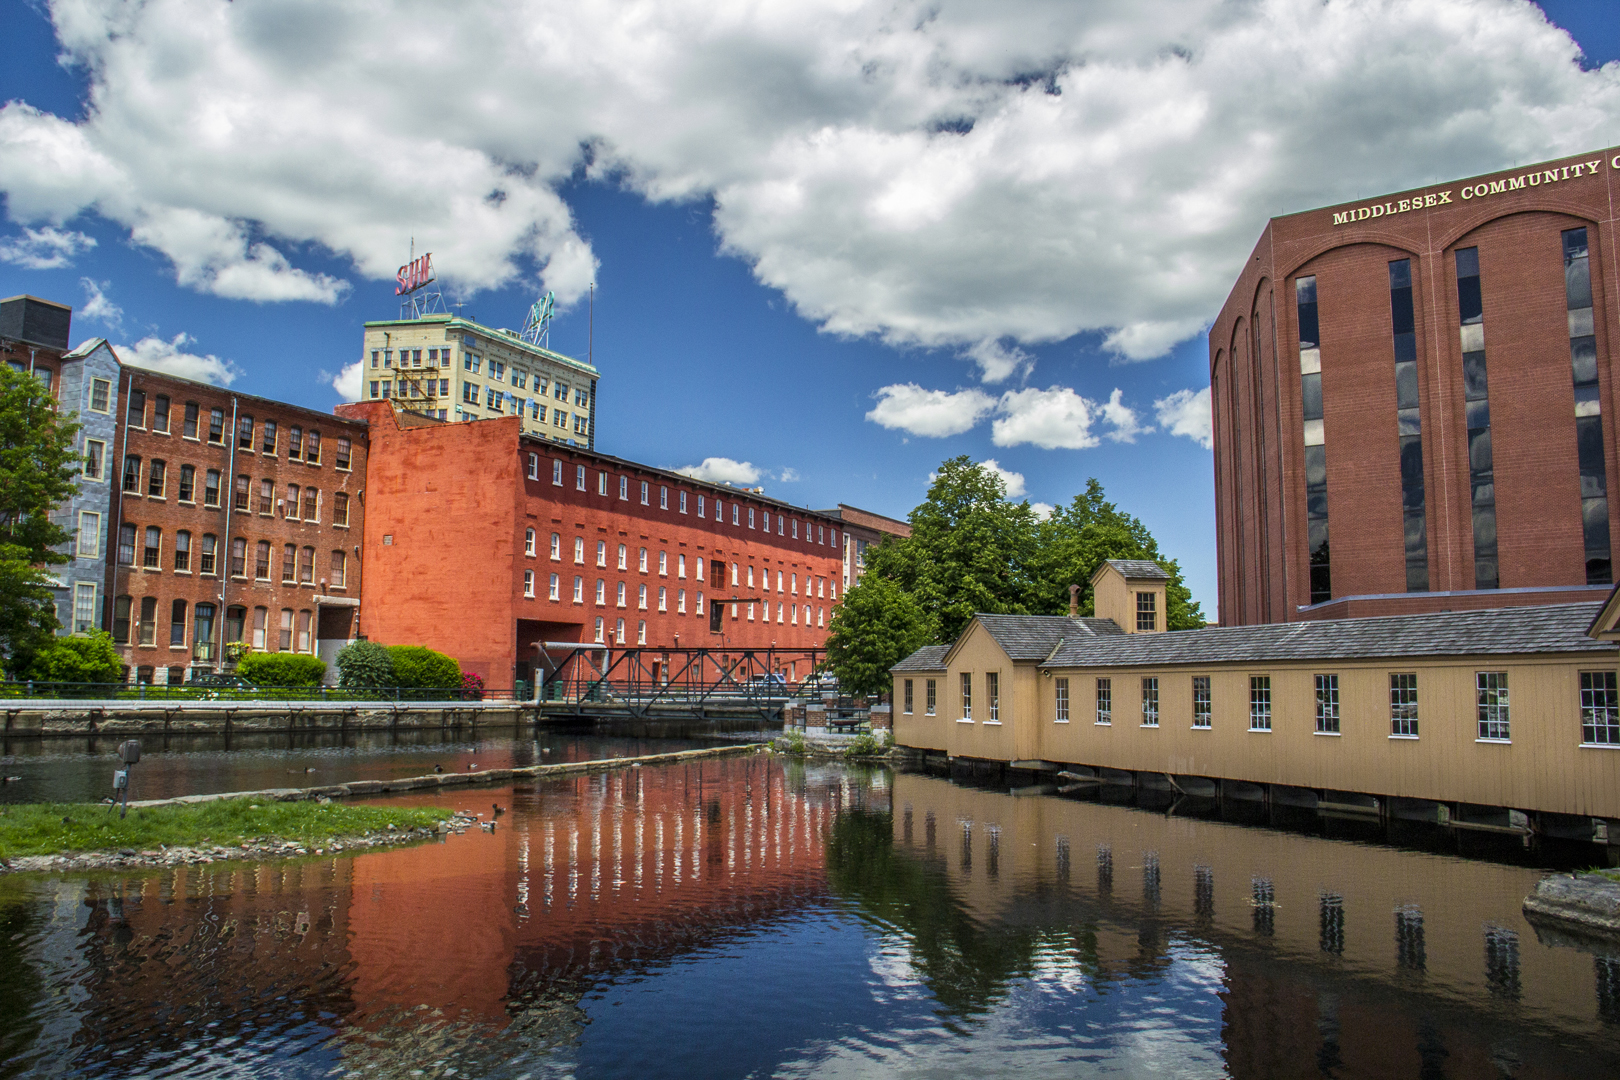 LowellMillCity_035